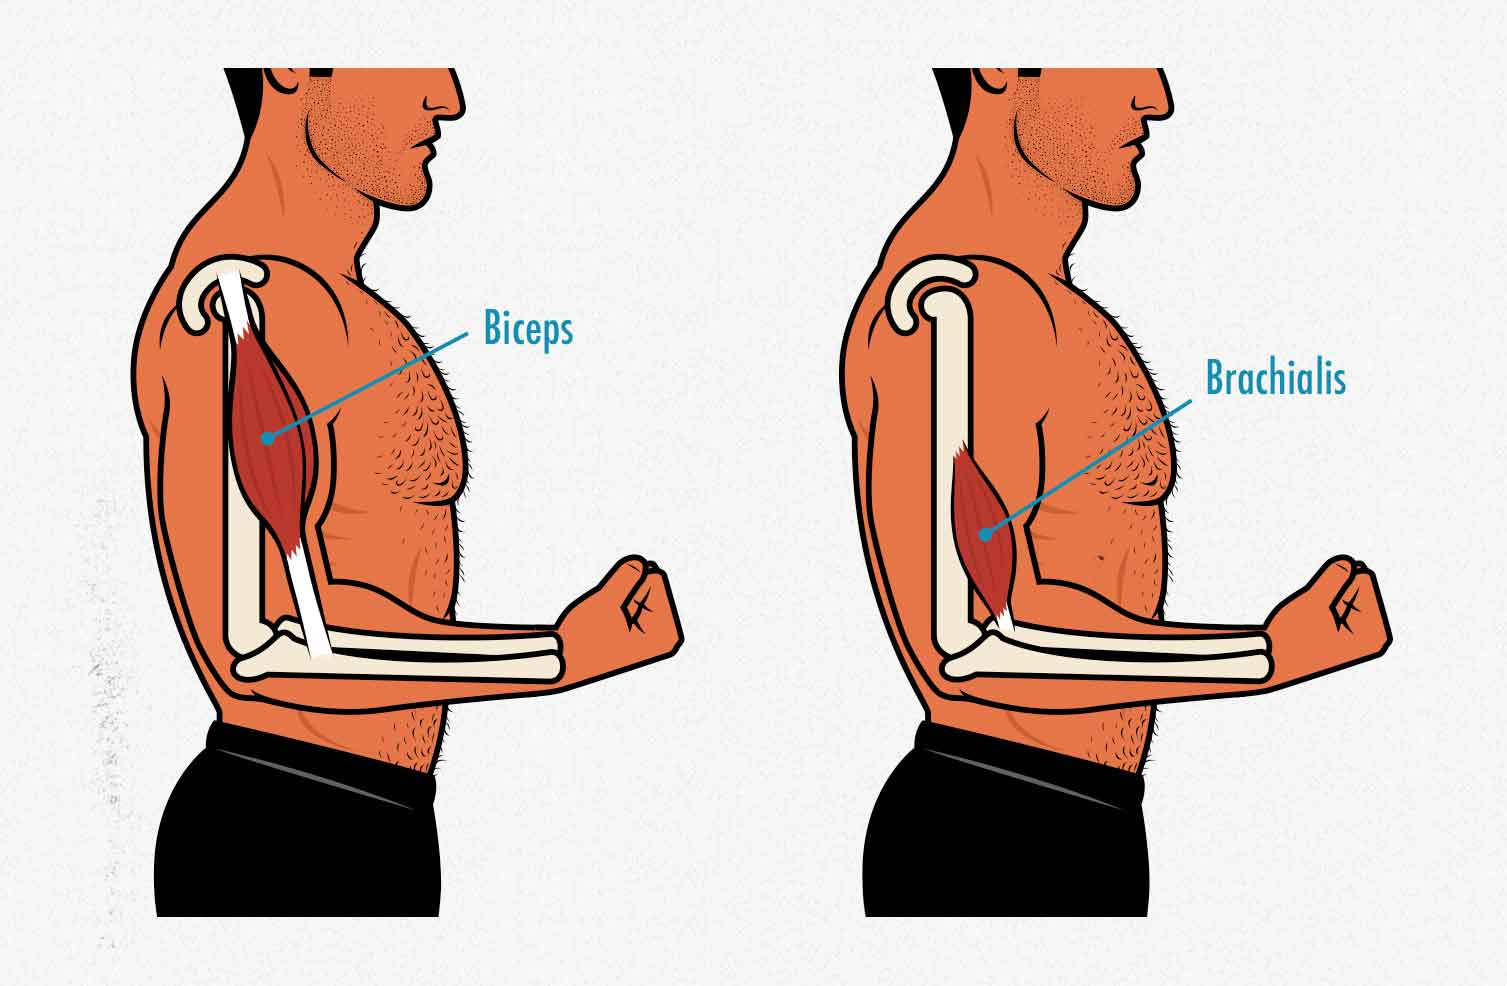 Diagram showing the anatomy of the biceps vs the biceps brachialis as it relates to bodybuilding.